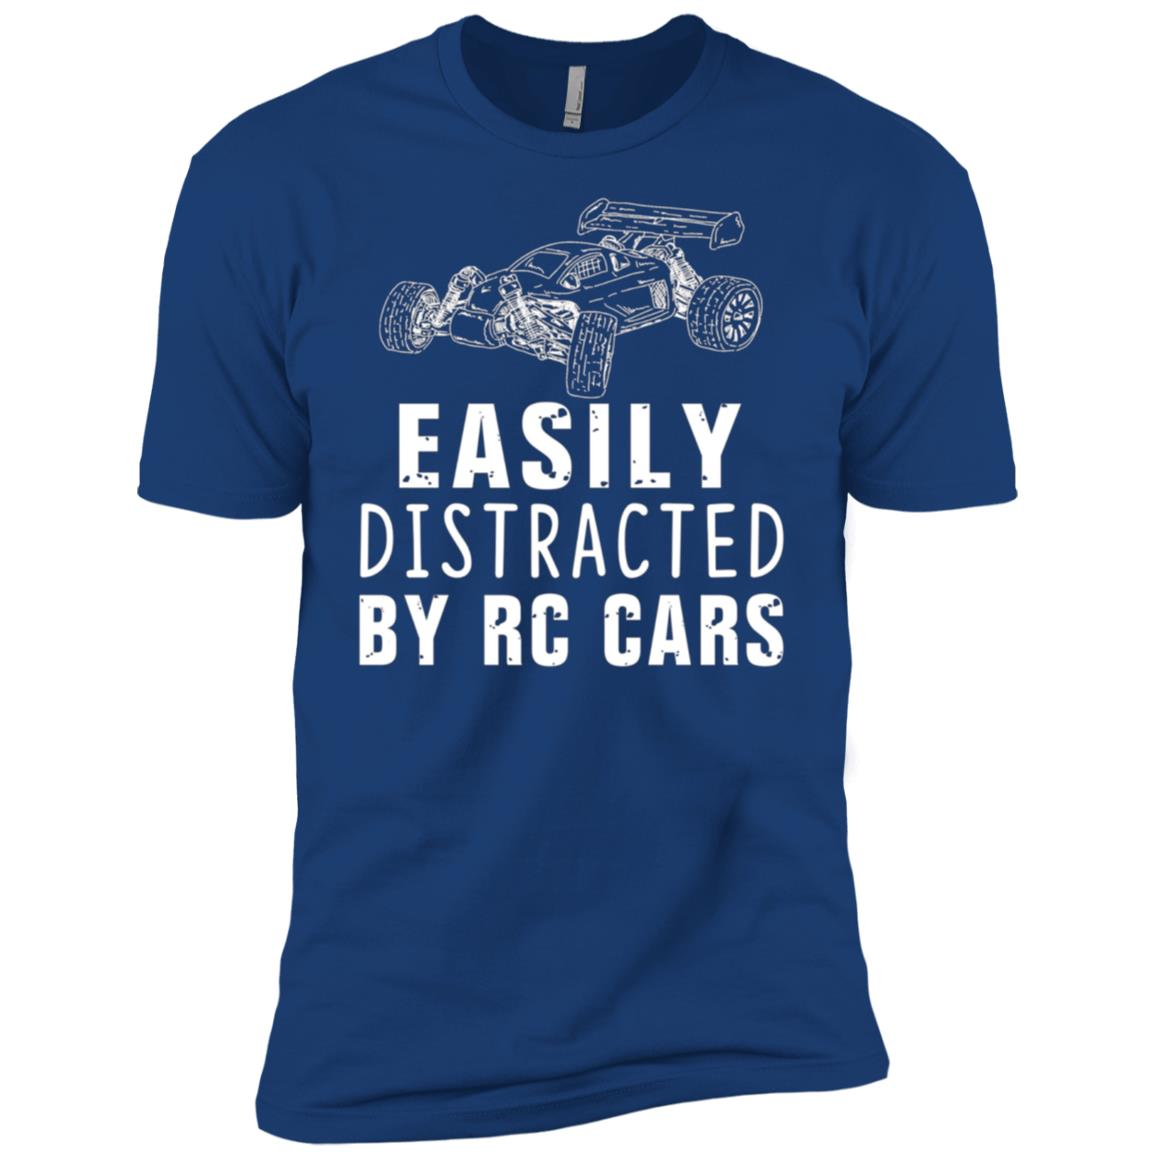 Easily Distracted By Rc Cars s For Merry Christmas Men Short Sleeve T-Shirt